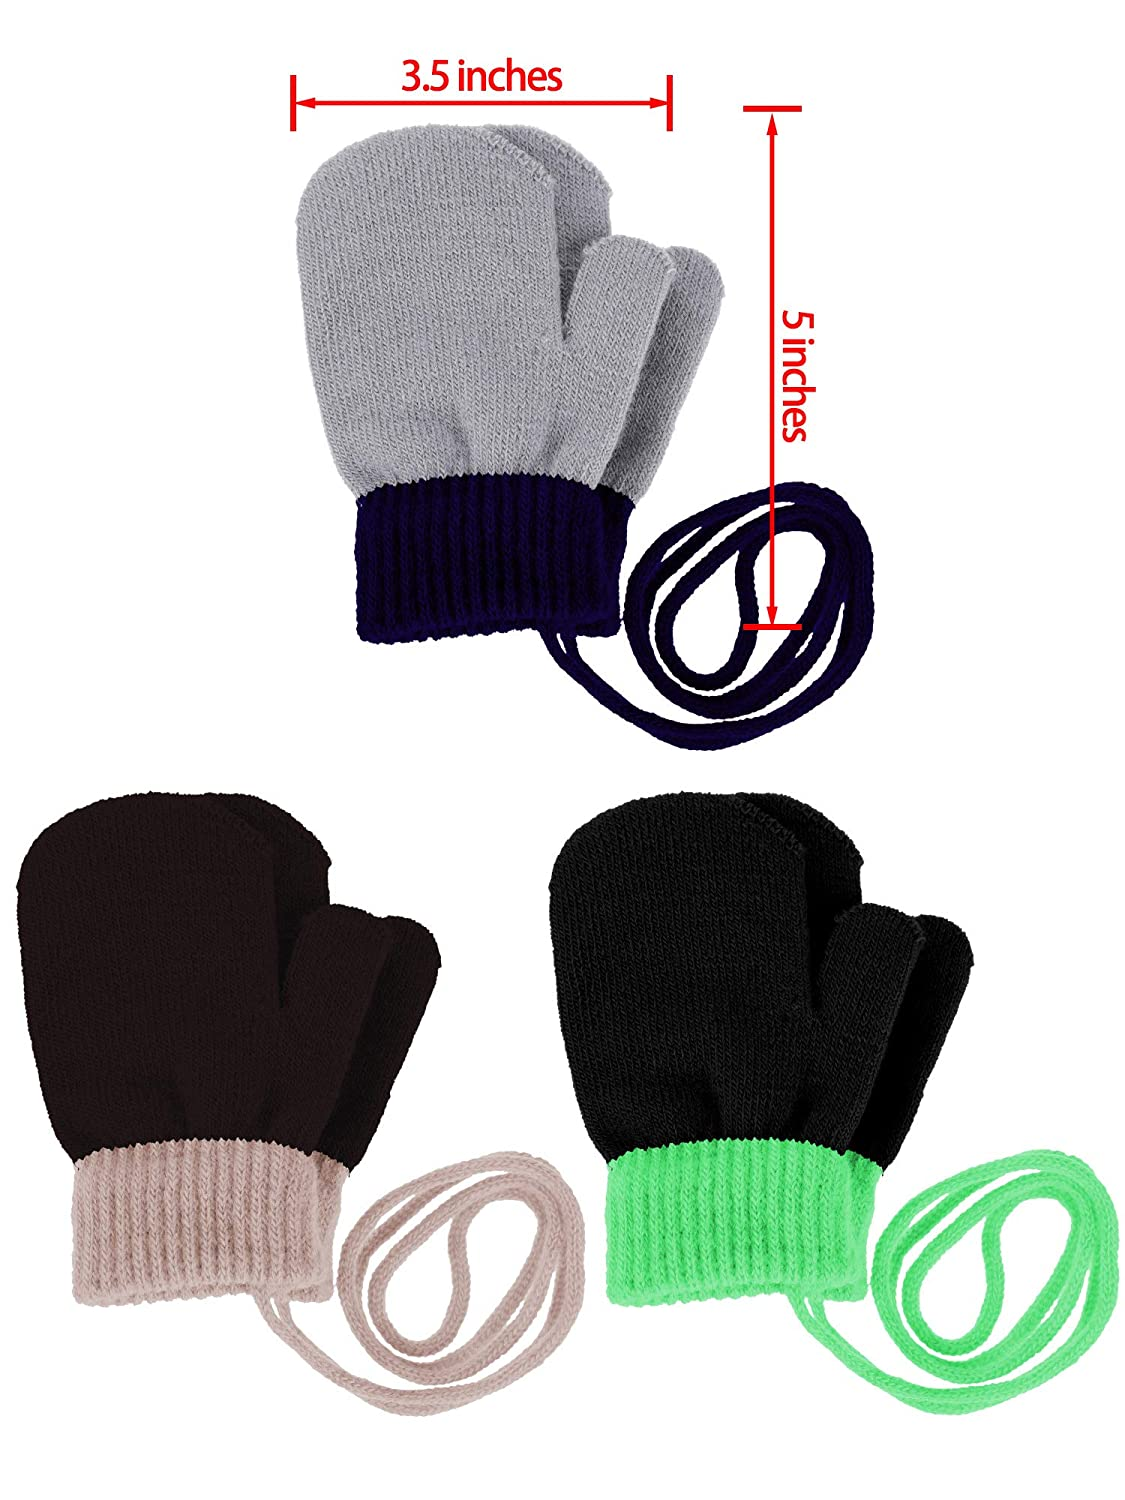 3 Pairs Toddler Magic Stretch Mittens Full Finger Knit Gloves Winter Warm Mittens